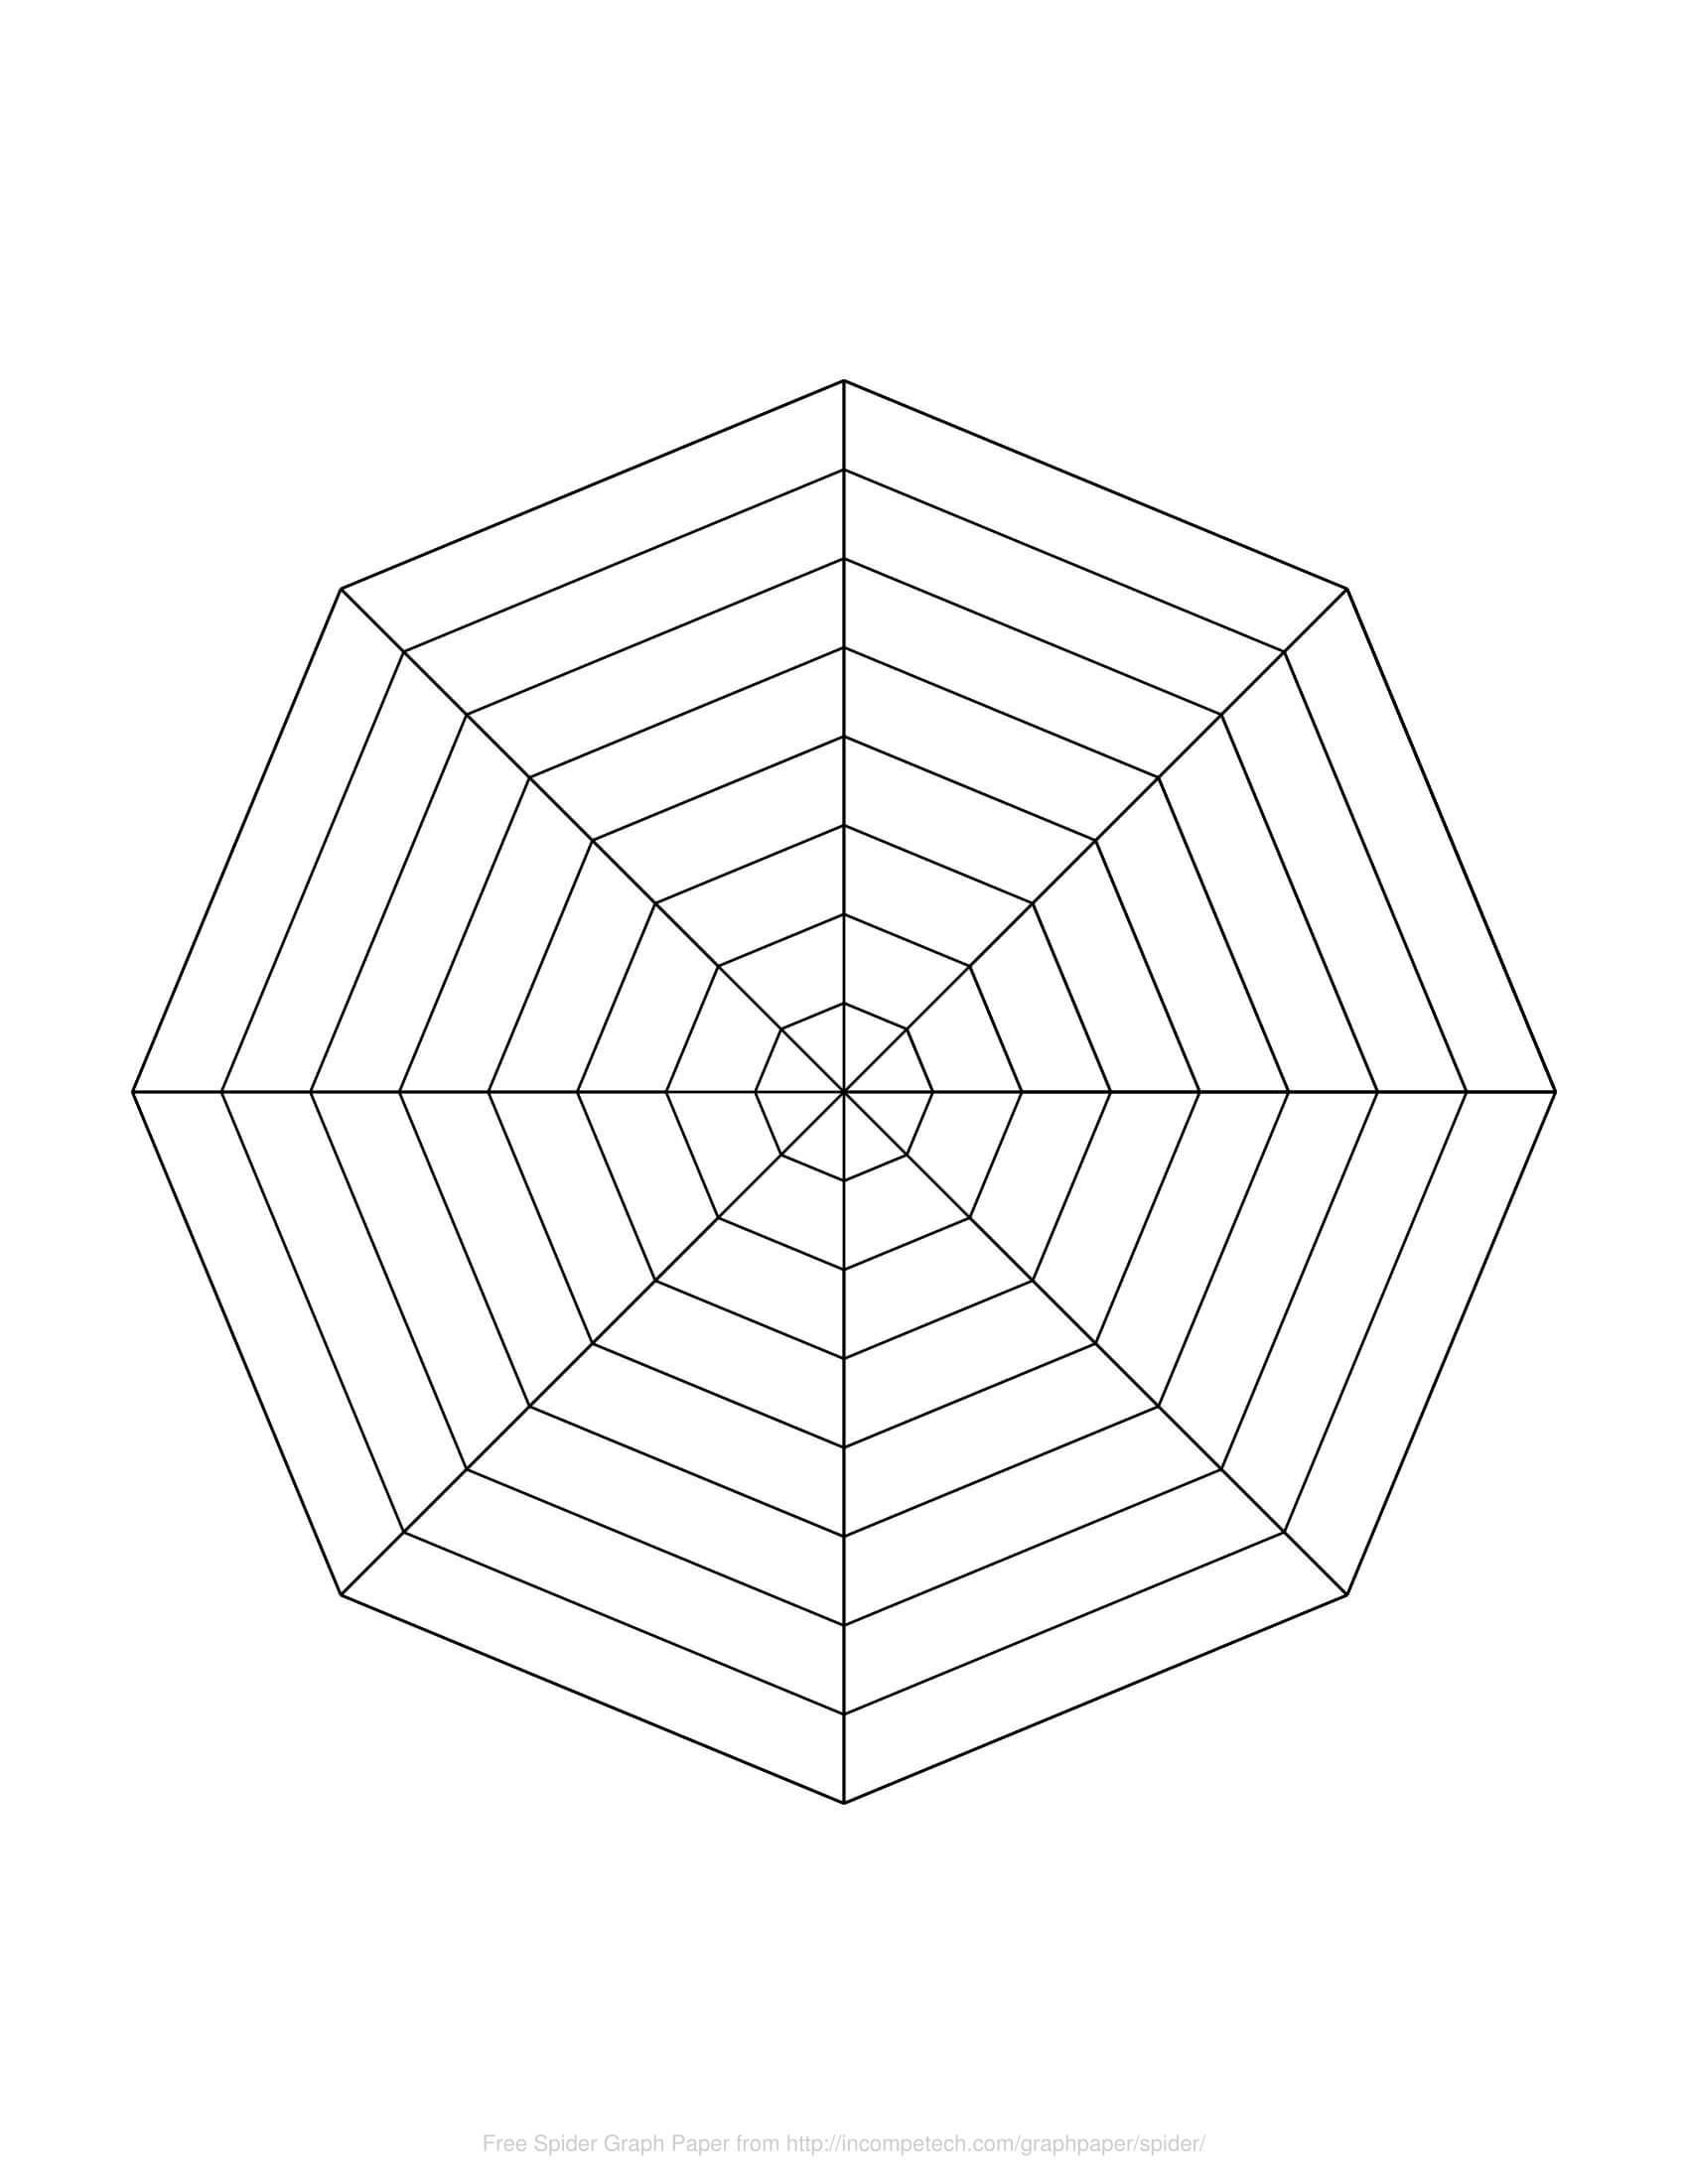 Free Online Graph Paper / Spider With Regard To Blank Radar Chart Template